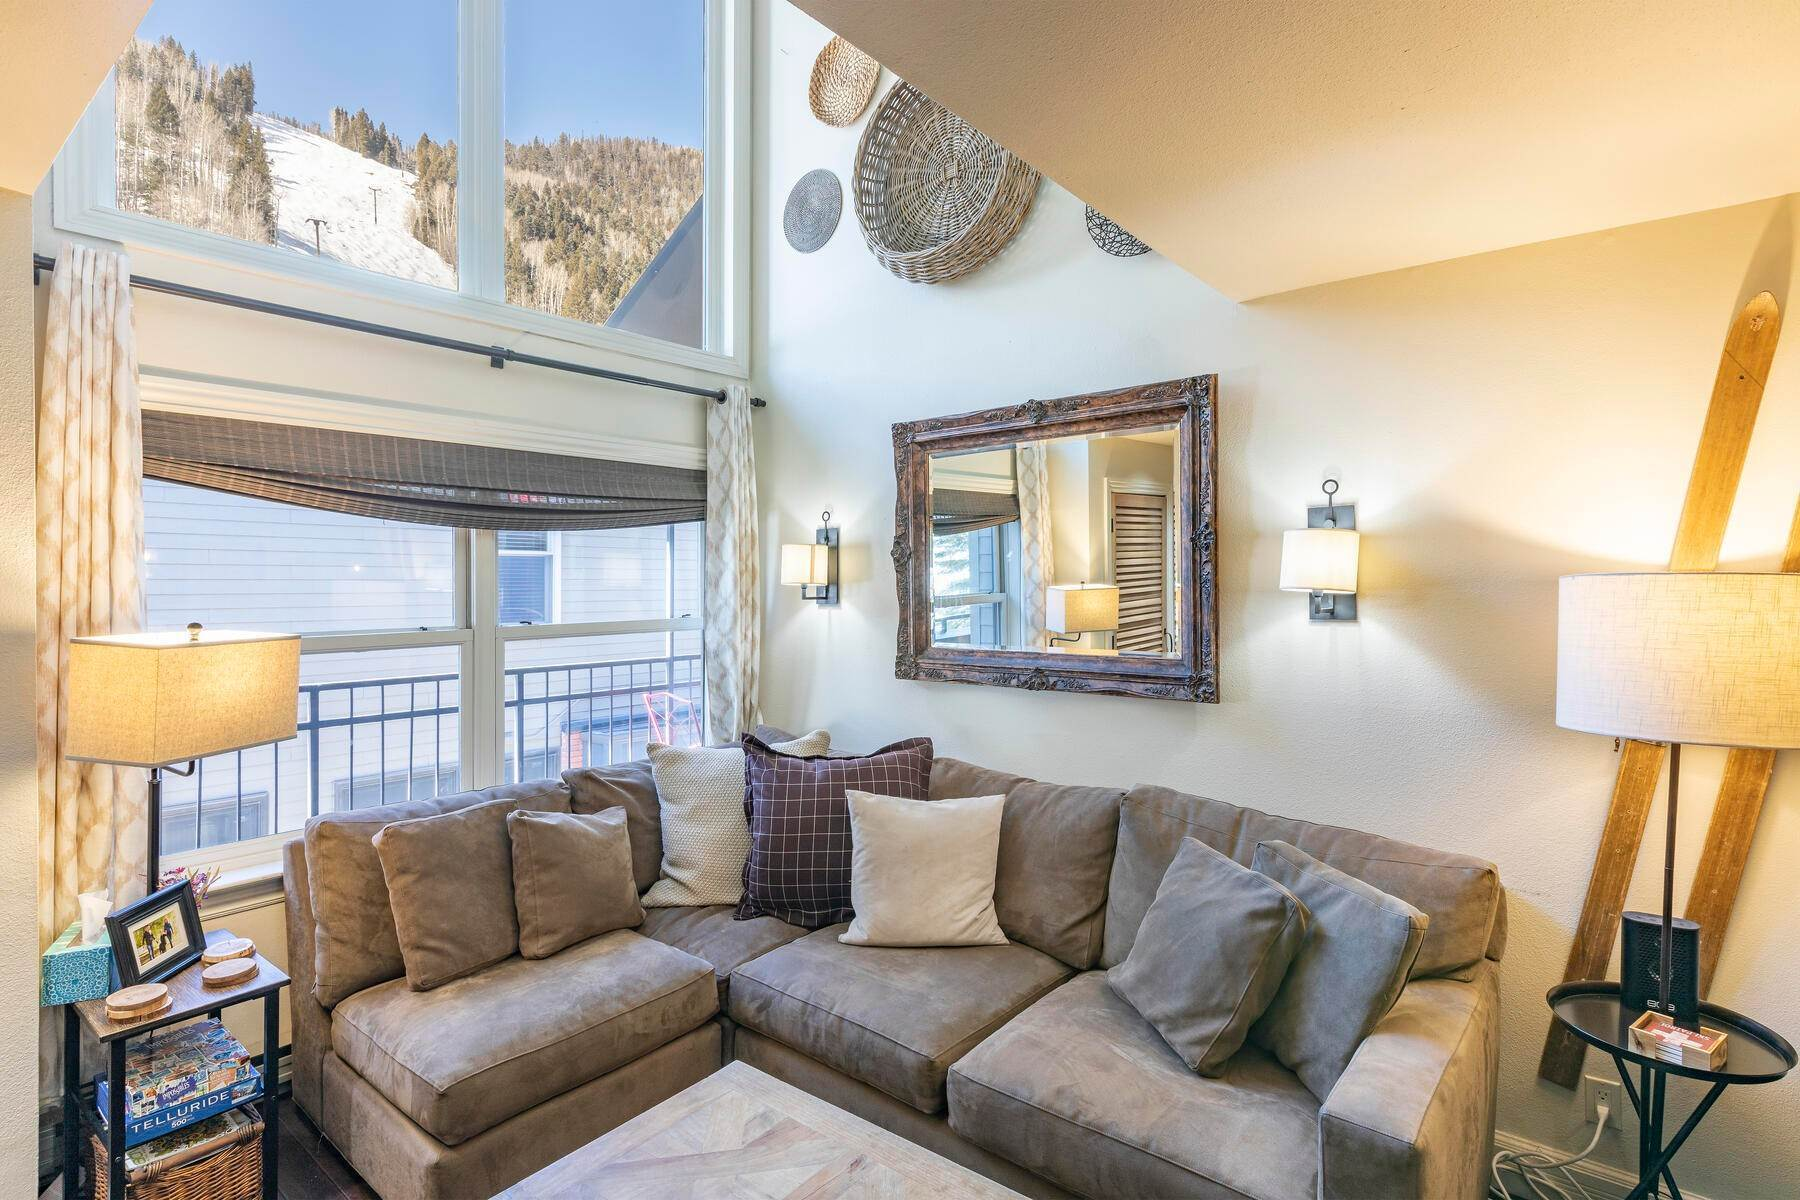 Property en Cimarron Lodge #17 300 S Mahoney Drive, R17 Telluride, Colorado 81435 Estados Unidos